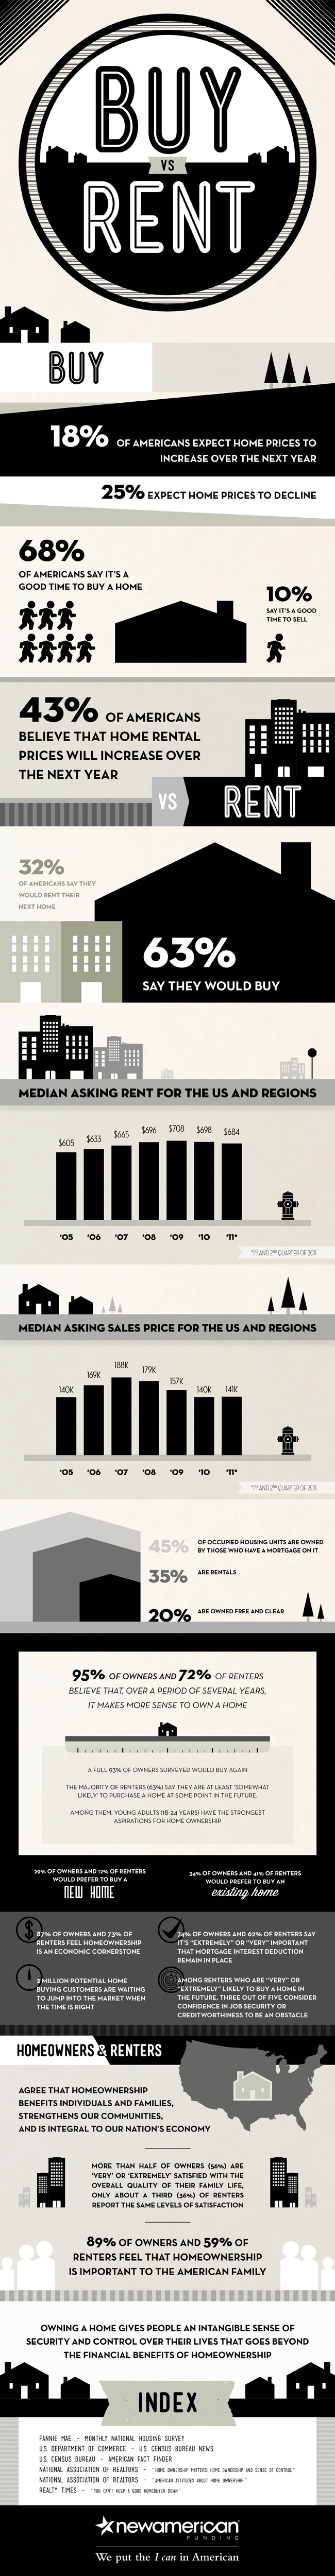 Buy or Rent Home-Infographic